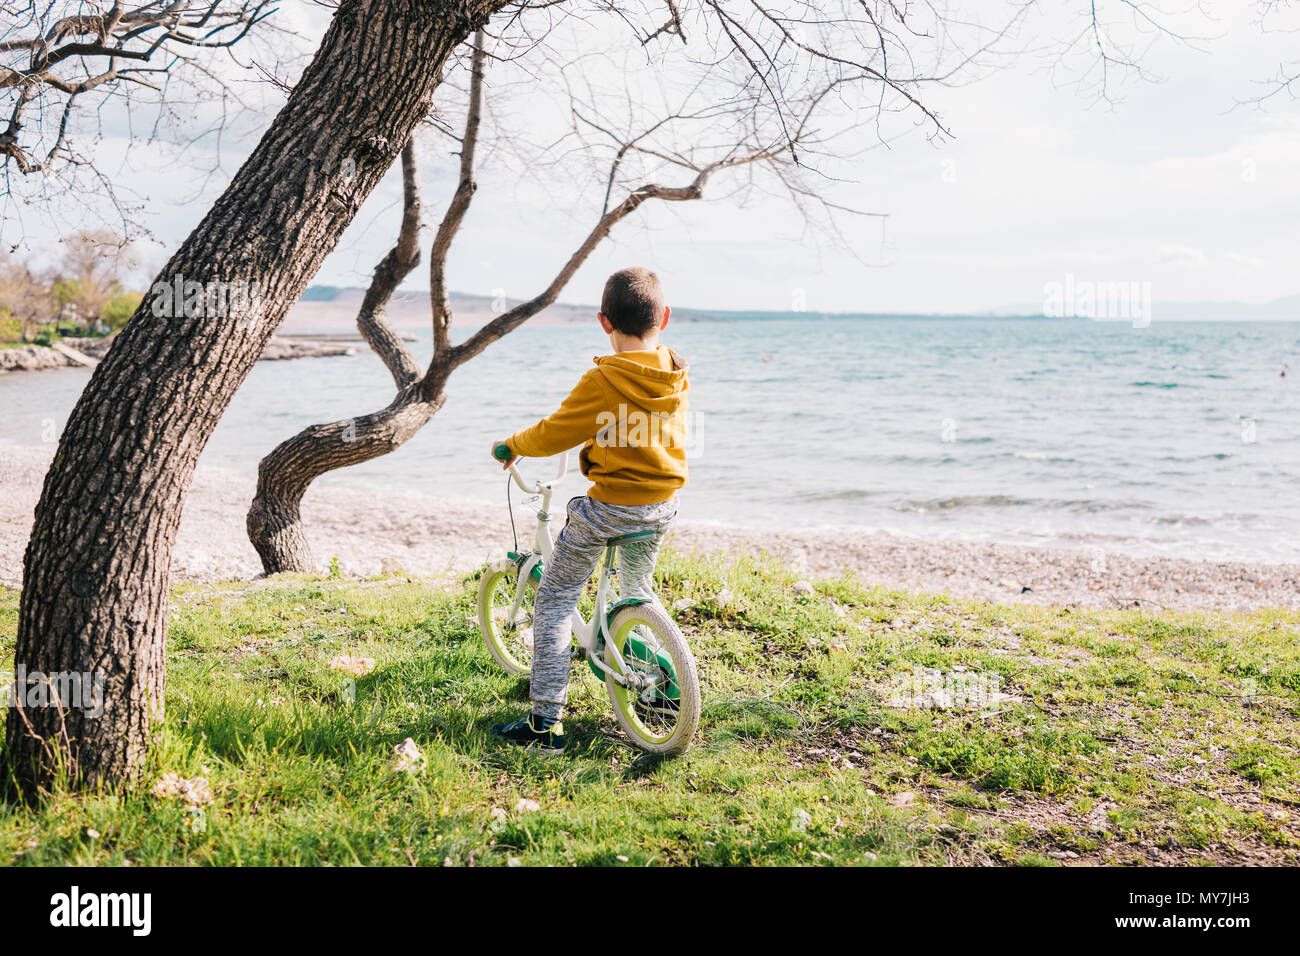 6 years old boy sitting on his bike by the sea - Stock Image